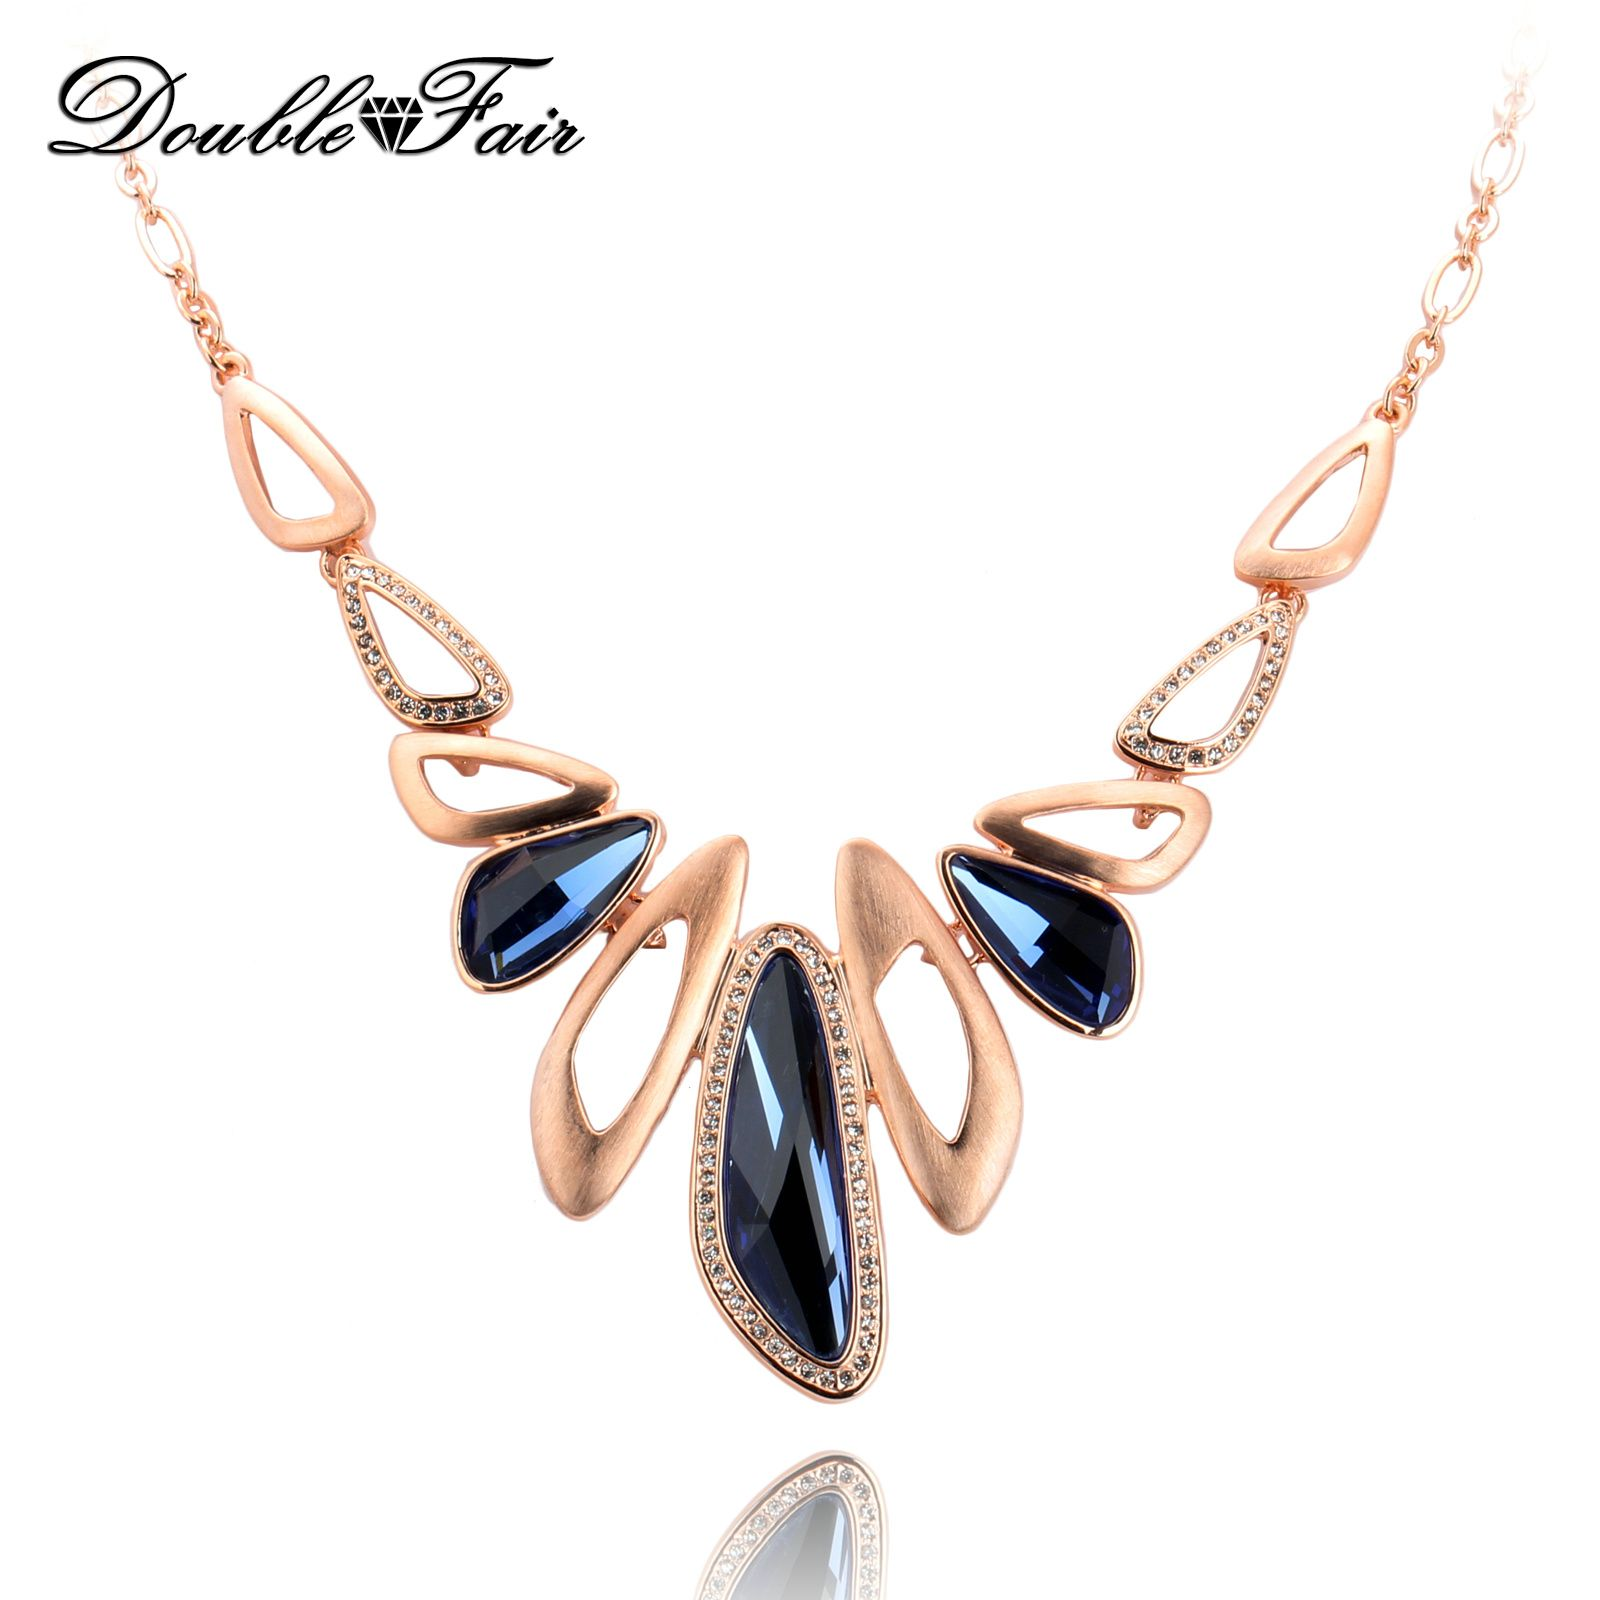 Luxury Blue Crystal Vintage Choker Necklaces & Pendants Fashion Brand Rhinestone Statement Jewelry For Women Accessiories DFN571